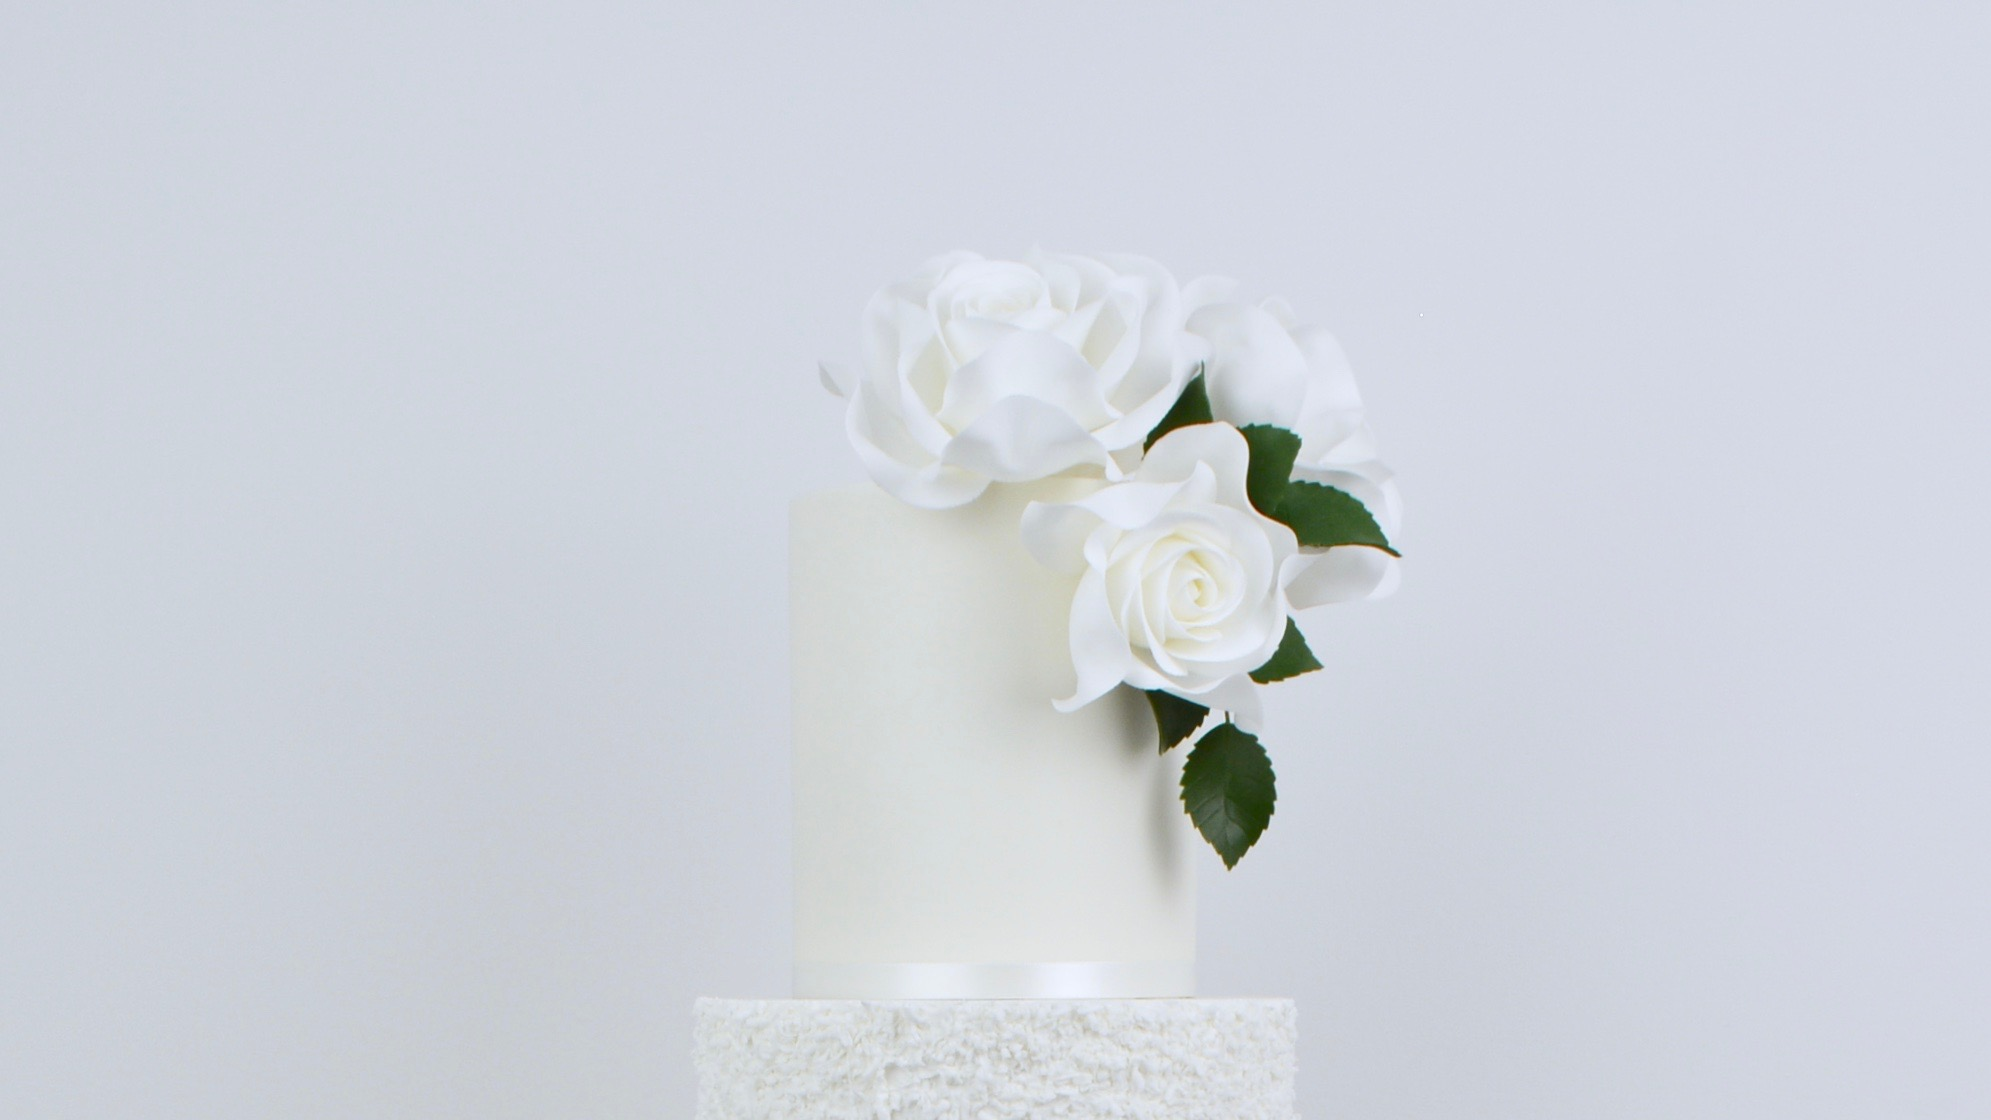 White Roses and Silver - A tall white textured tier with beautiful white roses, dark green foliage and silver leaf for a stylishly elegant wedding cake